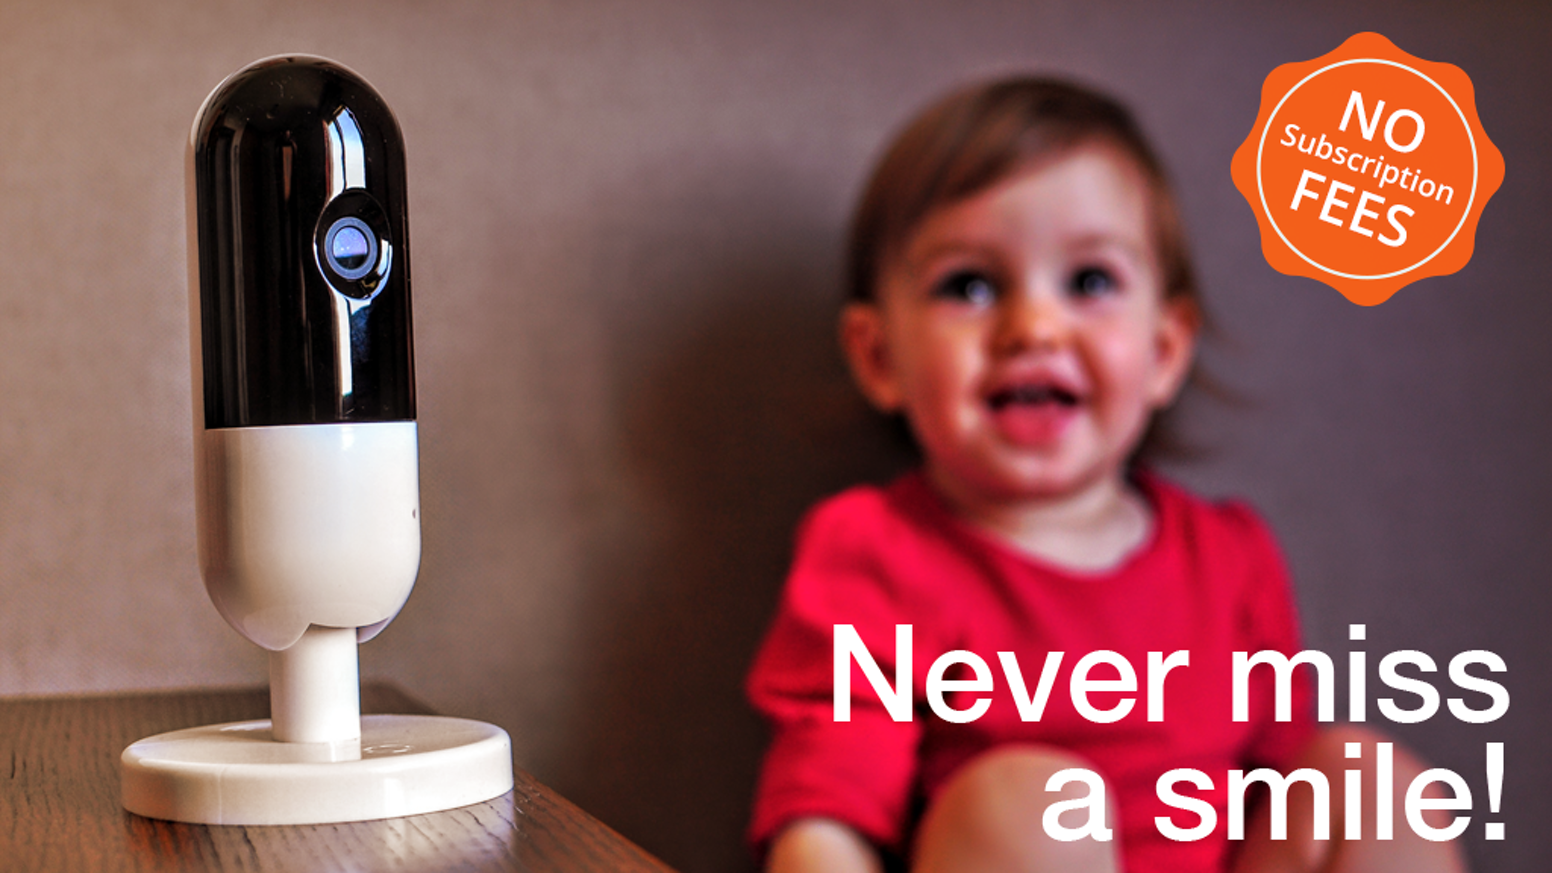 First child monitoring solution that employs Artificial Intelligence (A.I.) to give parents smart daily highlights and smile detection